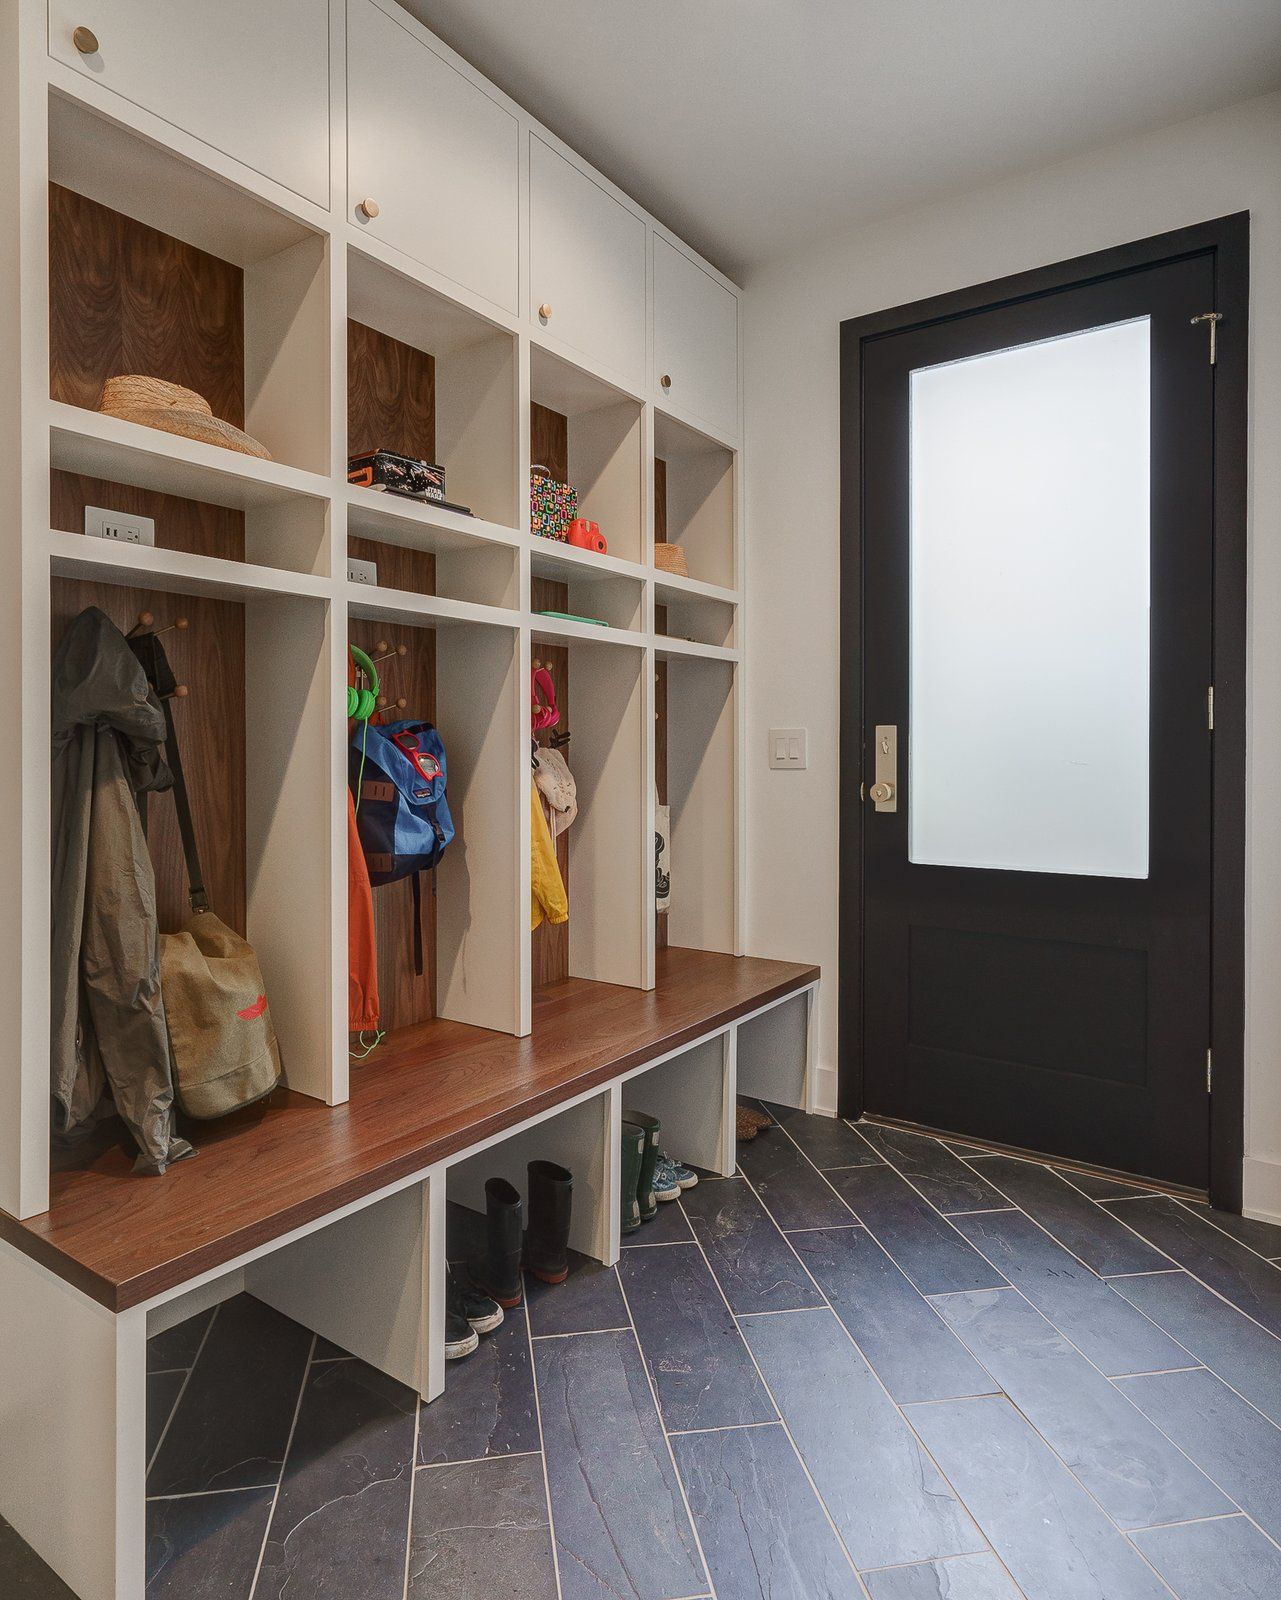 Hallway and Light Hardwood Floor Dorchester Interior Mudroom/Lockers  The Dorchester Project by  Paul + Jo Studio